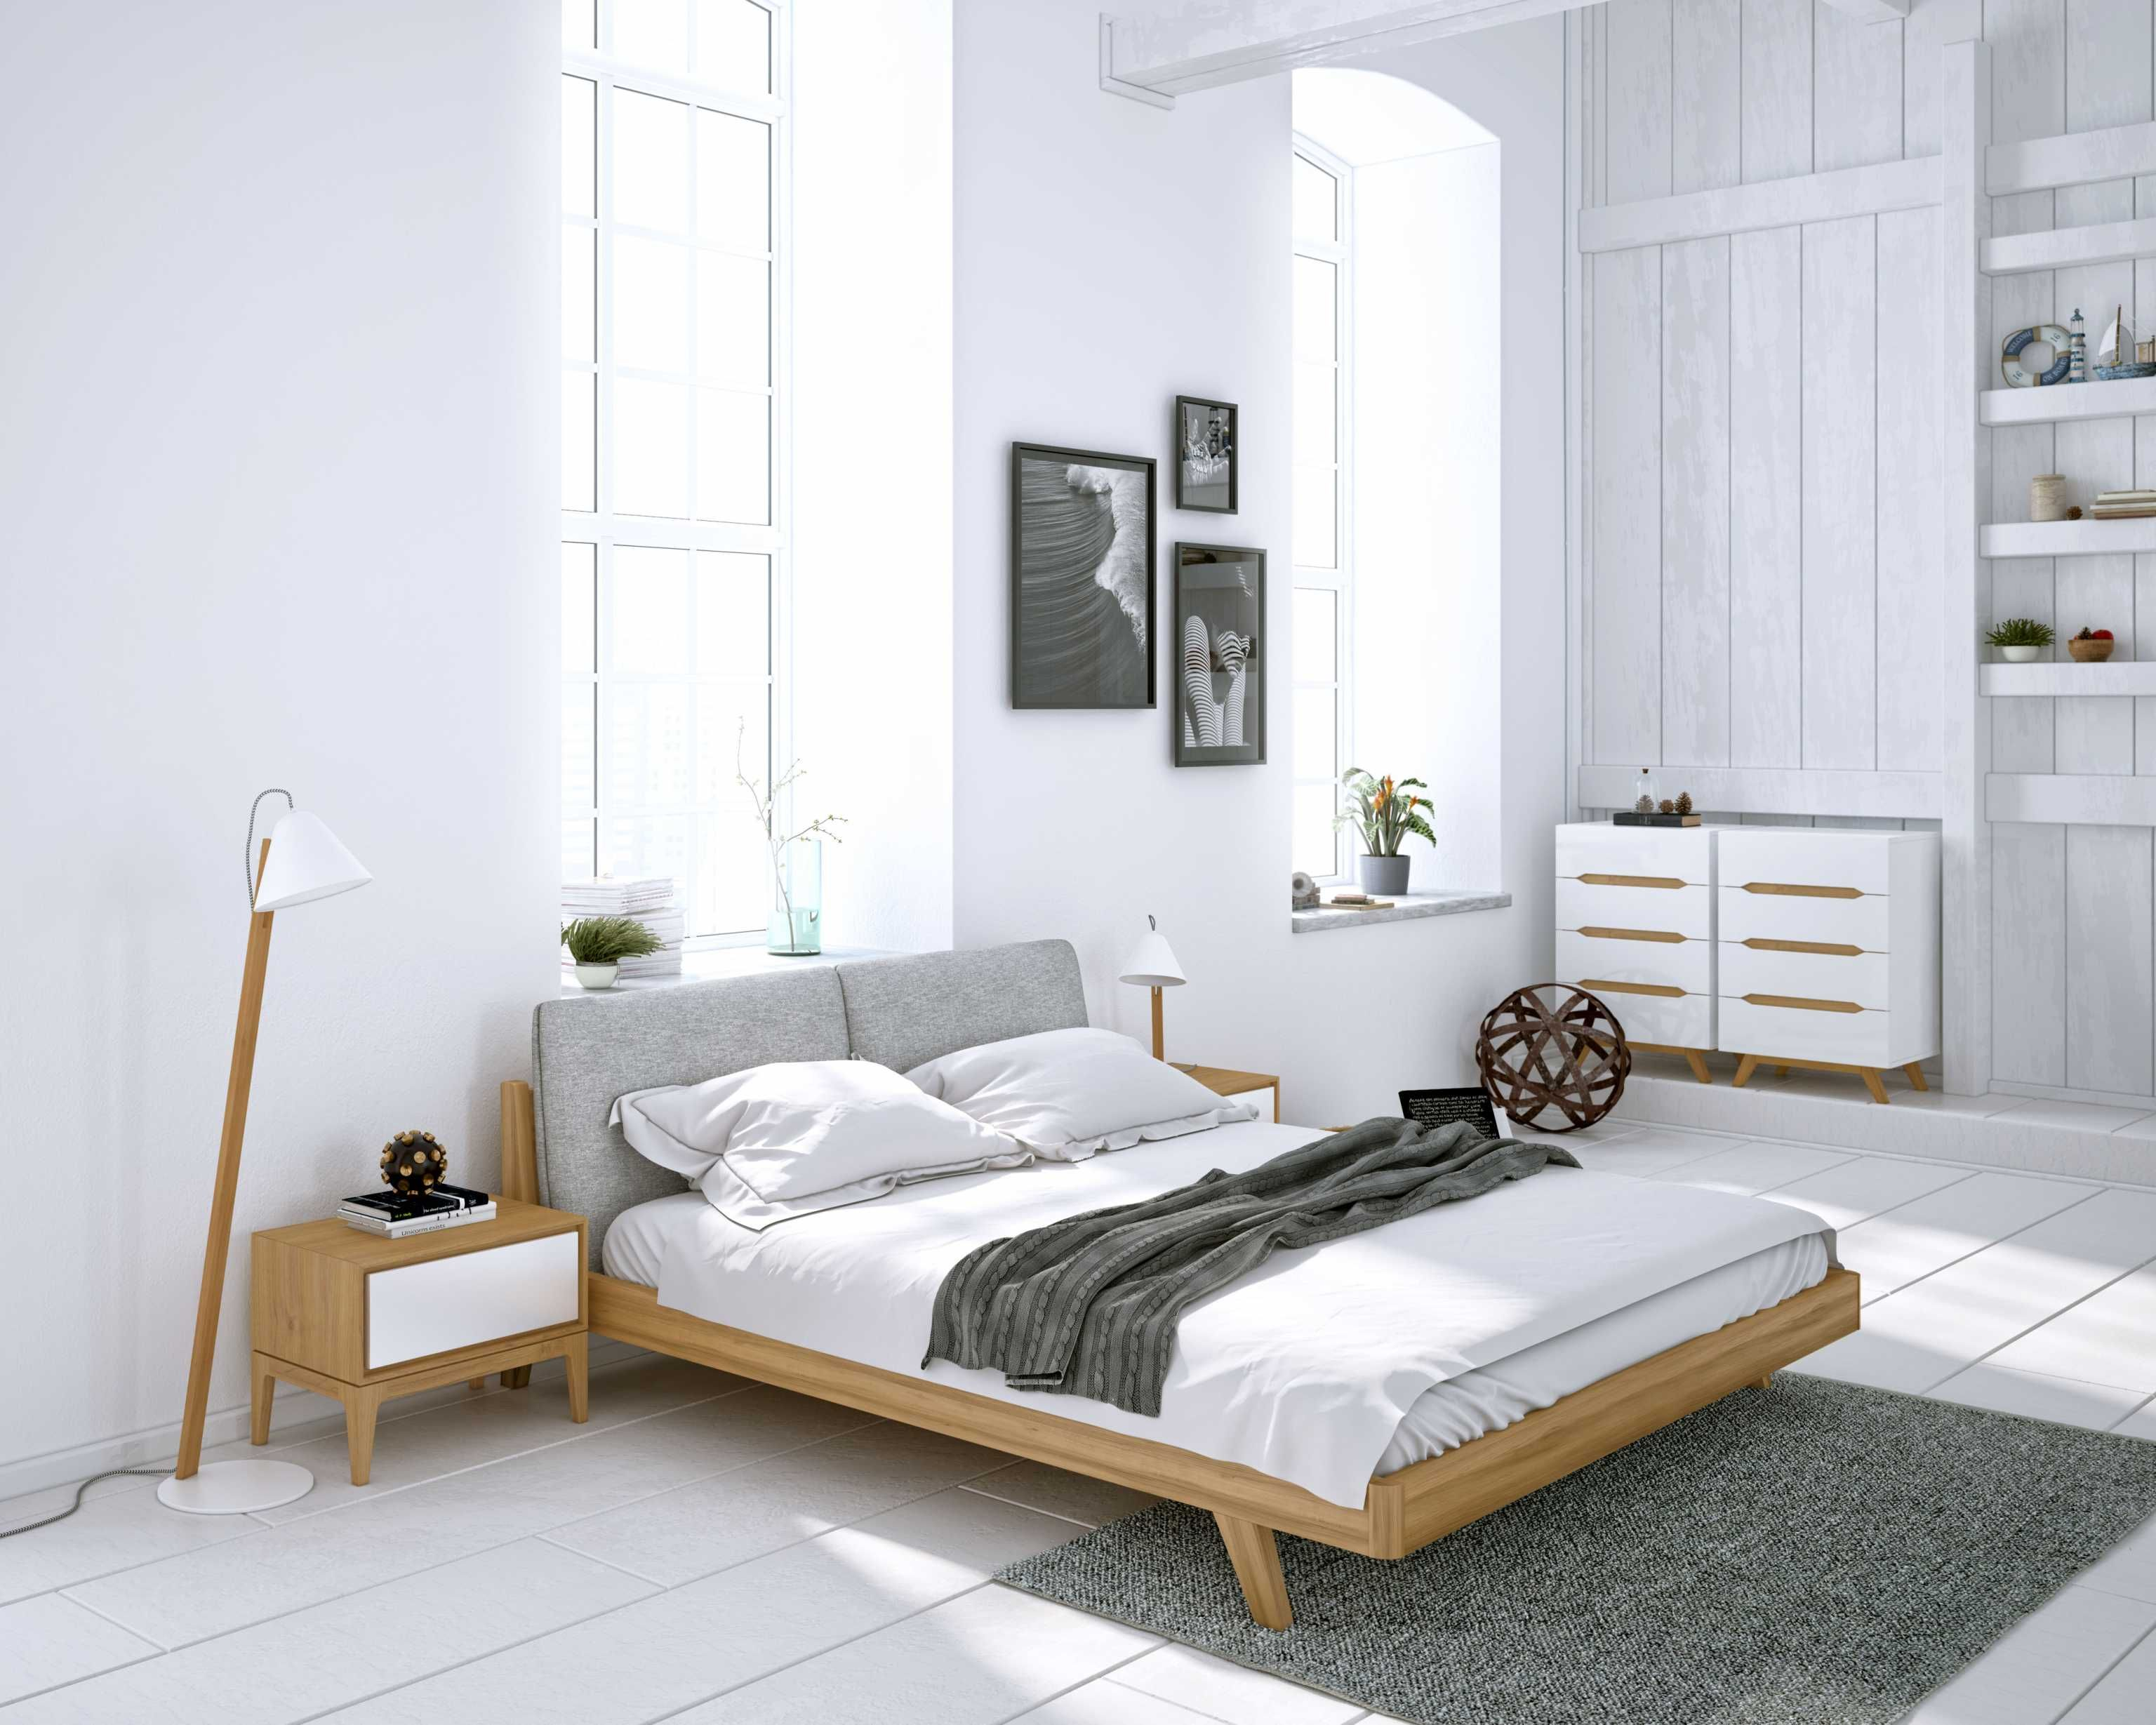 Mikkel Bed Rove Concepts Rove Concepts MidCentury